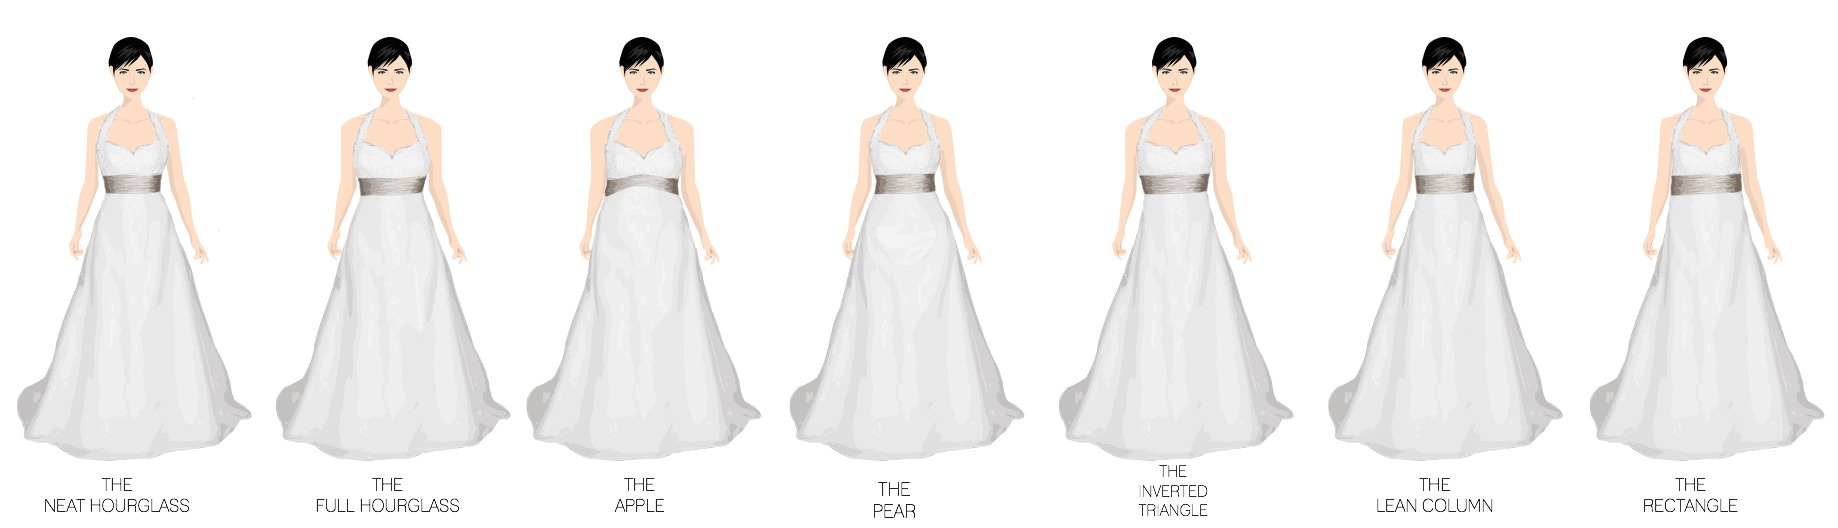 Wedding Dresses For Different Shapes : What wedding gown is best for your shape trusper